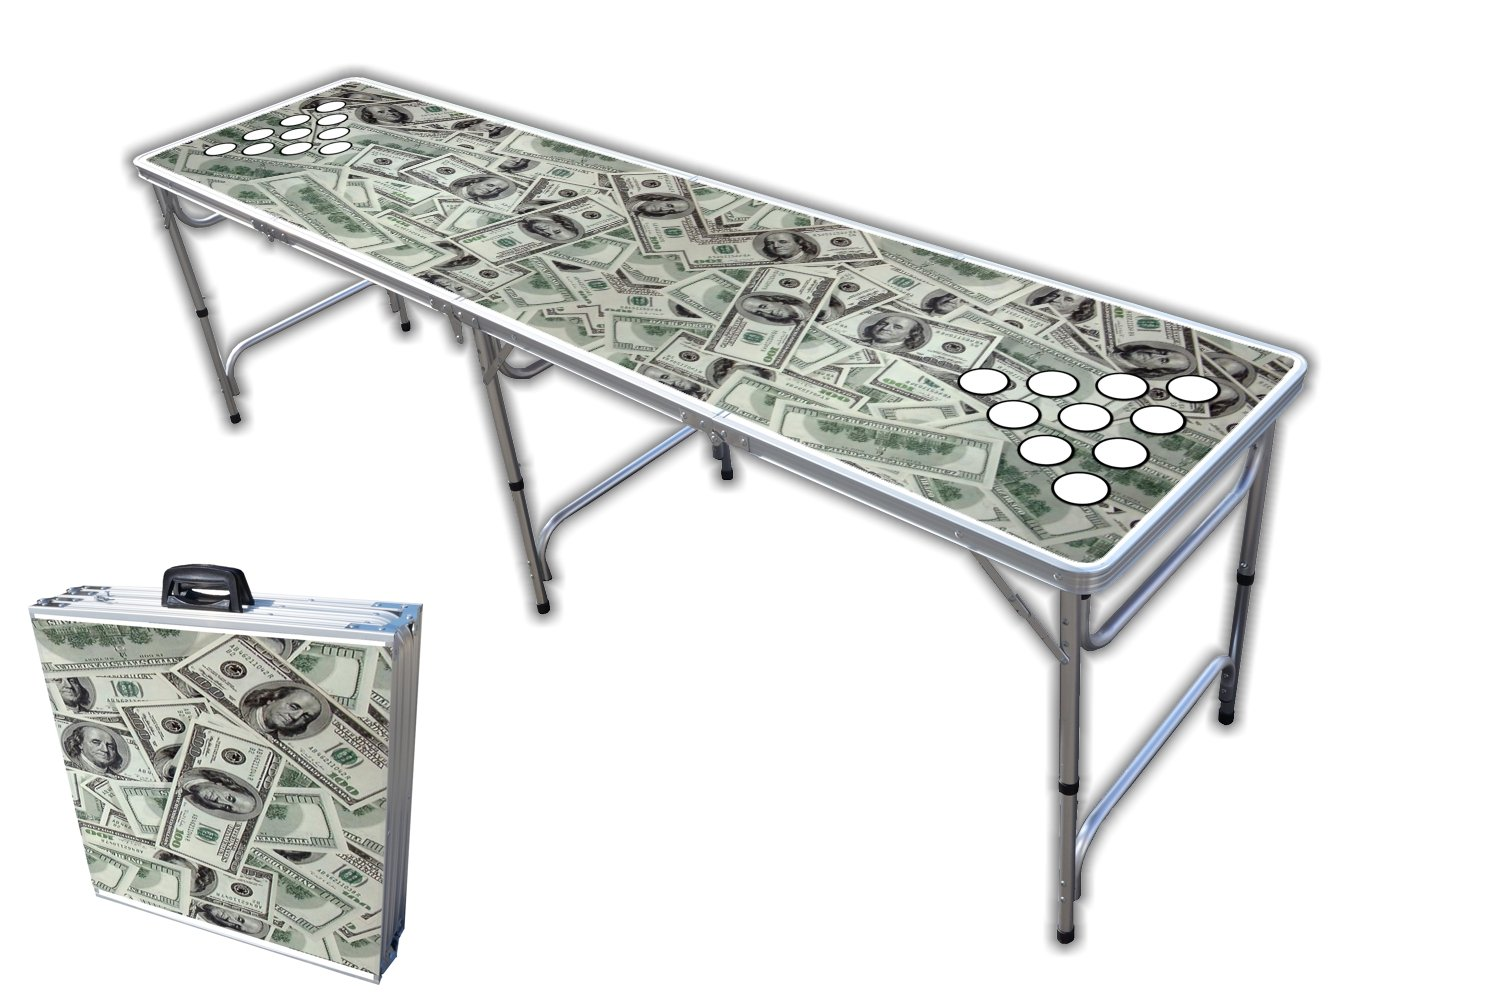 8-Foot Professional Beer Pong Table w/Cup Holes - So Friggin Money Graphic by PartyPongTables.com